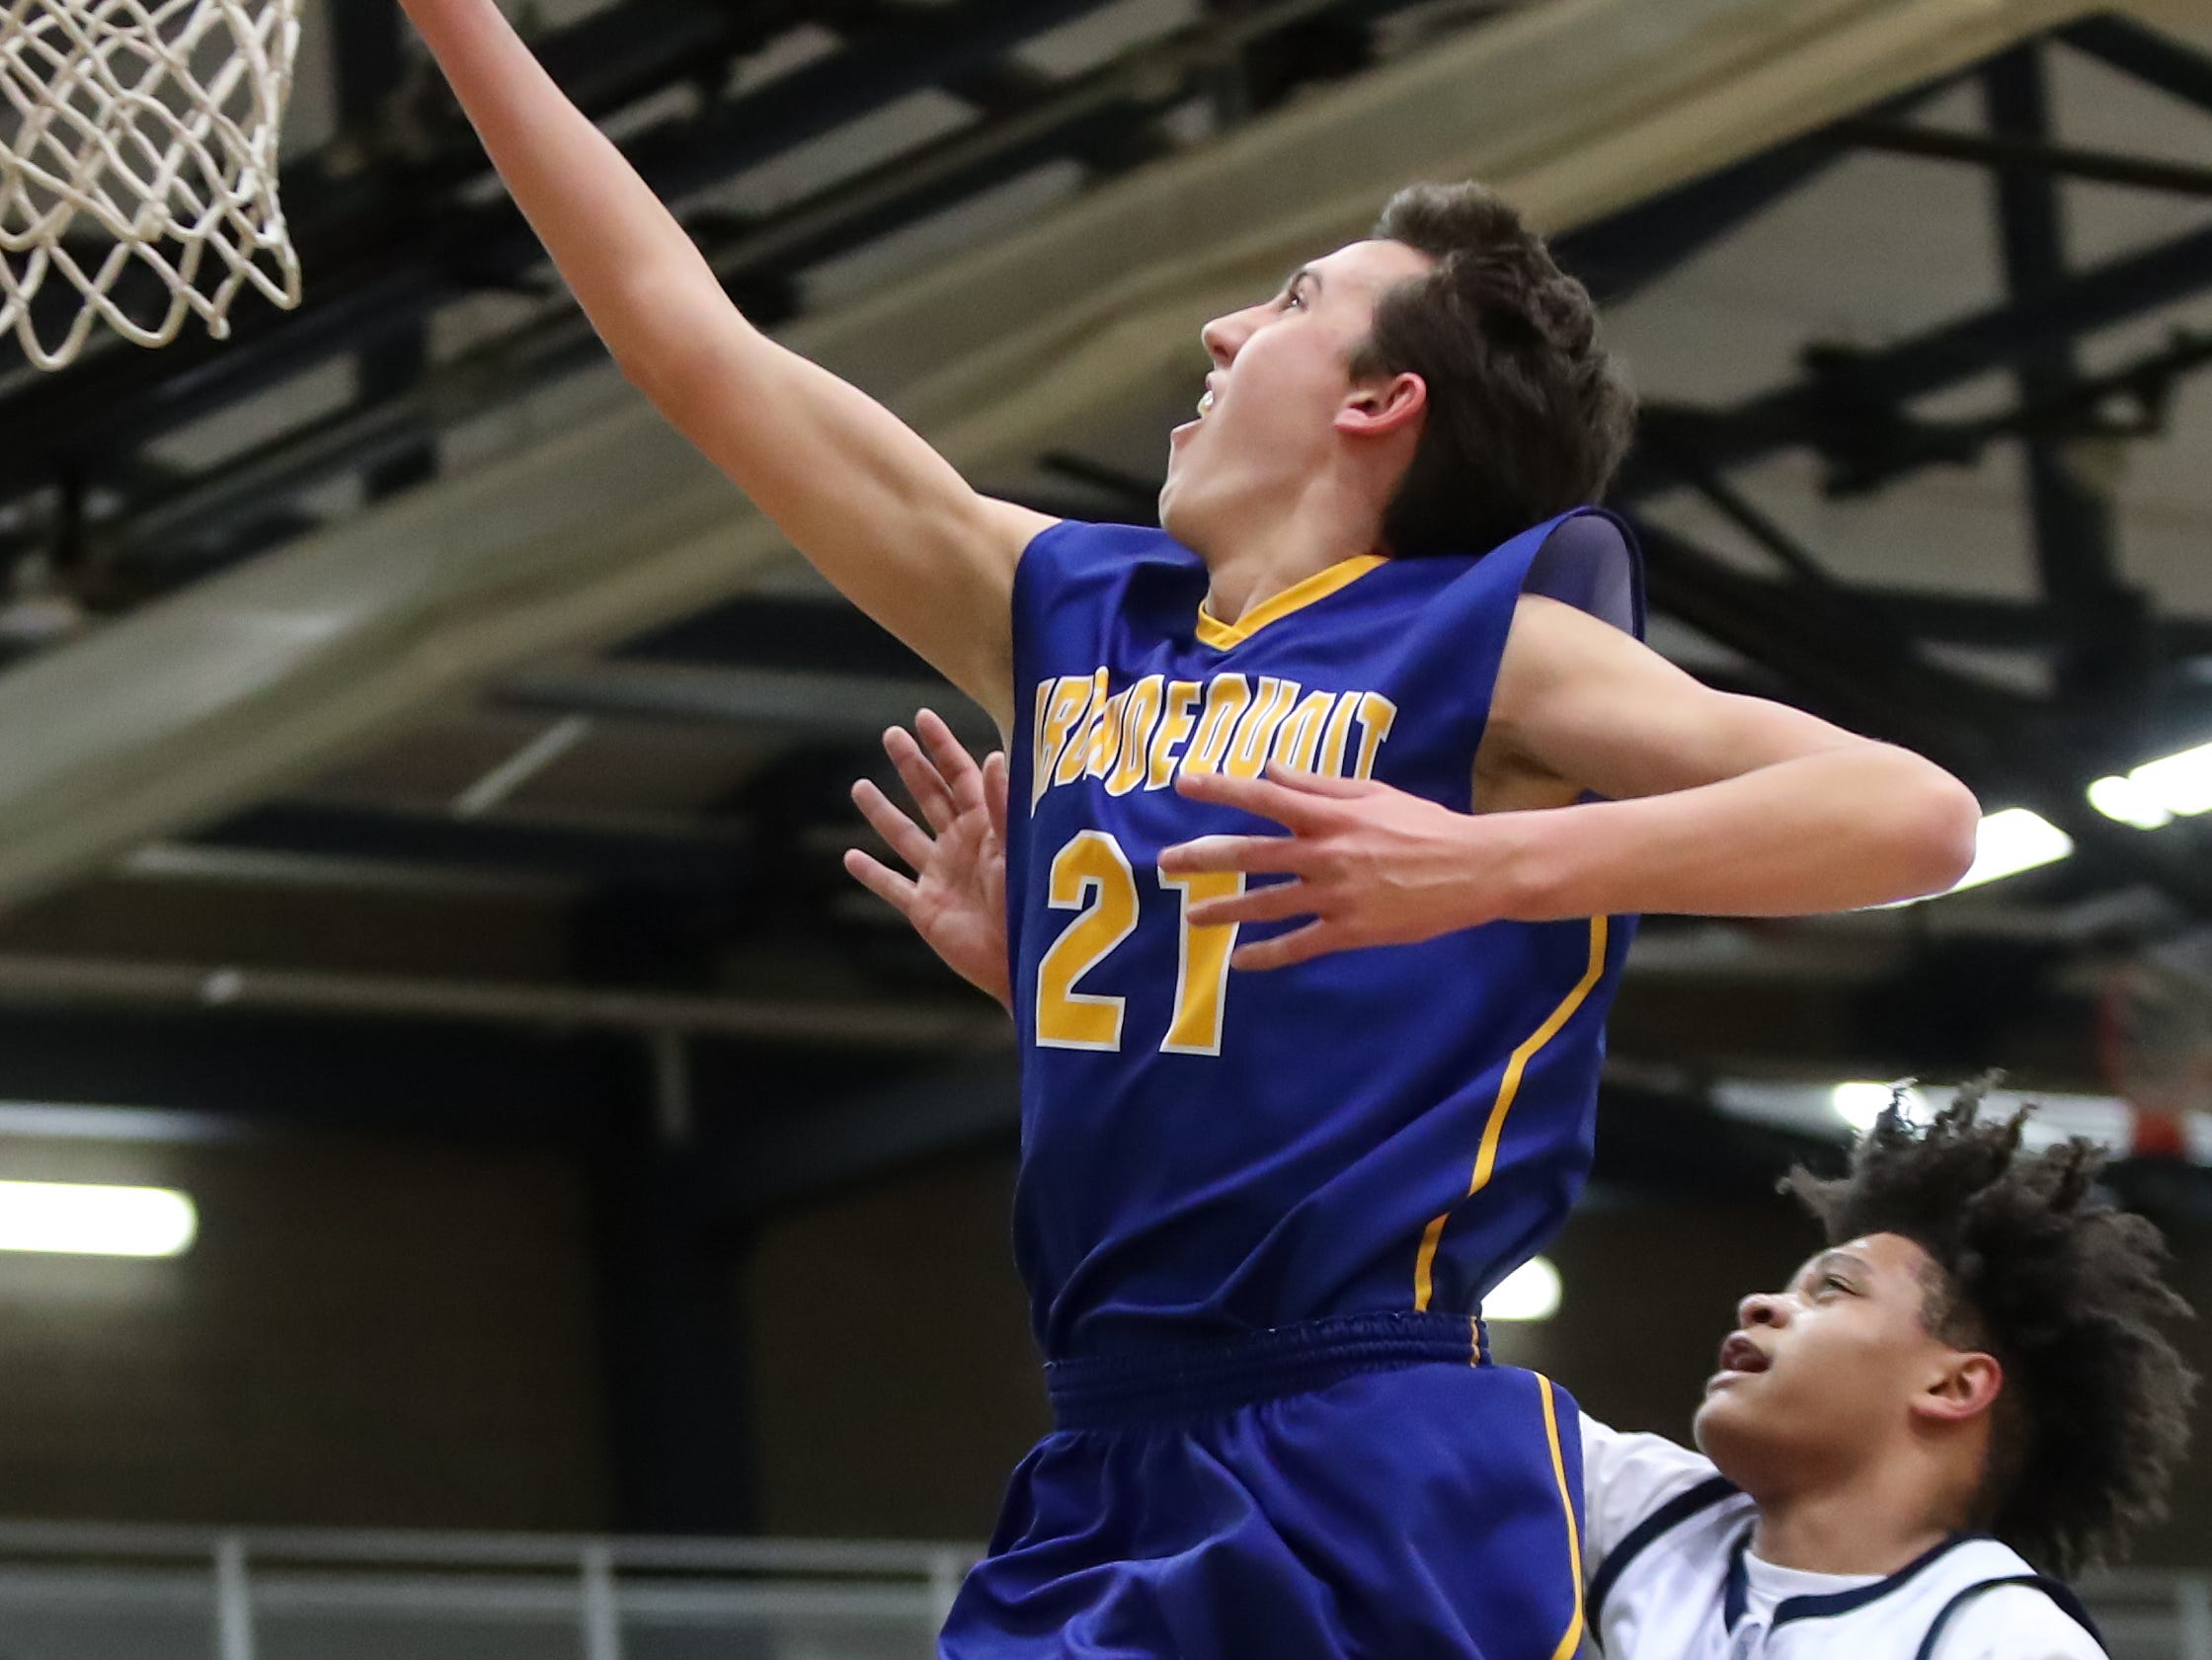 Josh Stenglein (21) of Irondequoit lays the ball up against Gates Chili during a Section V high school boys basketball game at Gates Chili High School on Feb. 1, 2019.